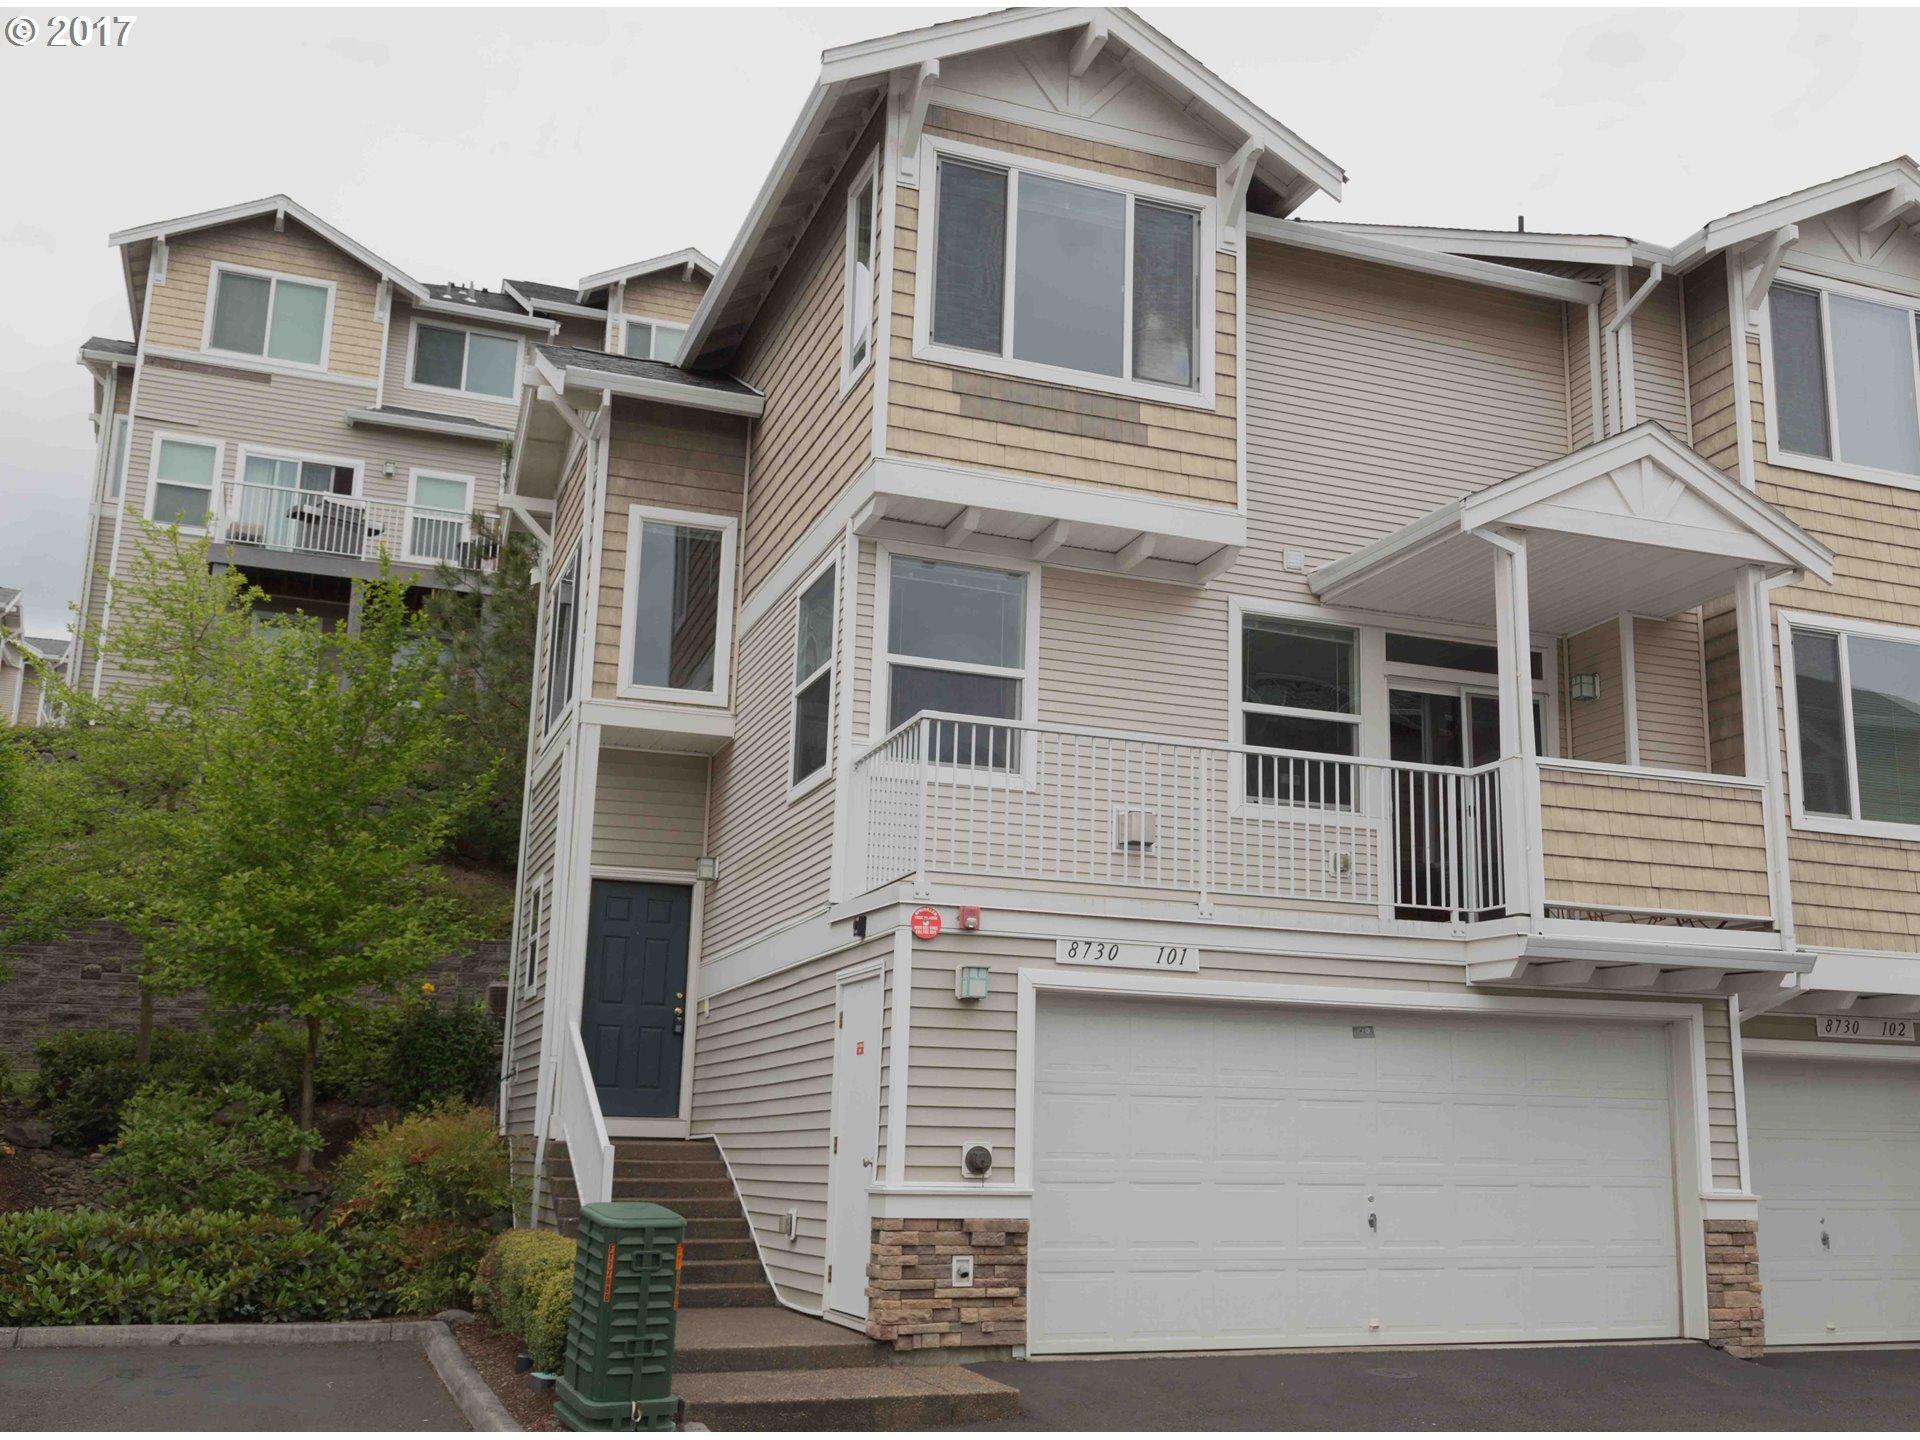 8730 SW 147th Ter 101 Beaverton OR Recently Sold